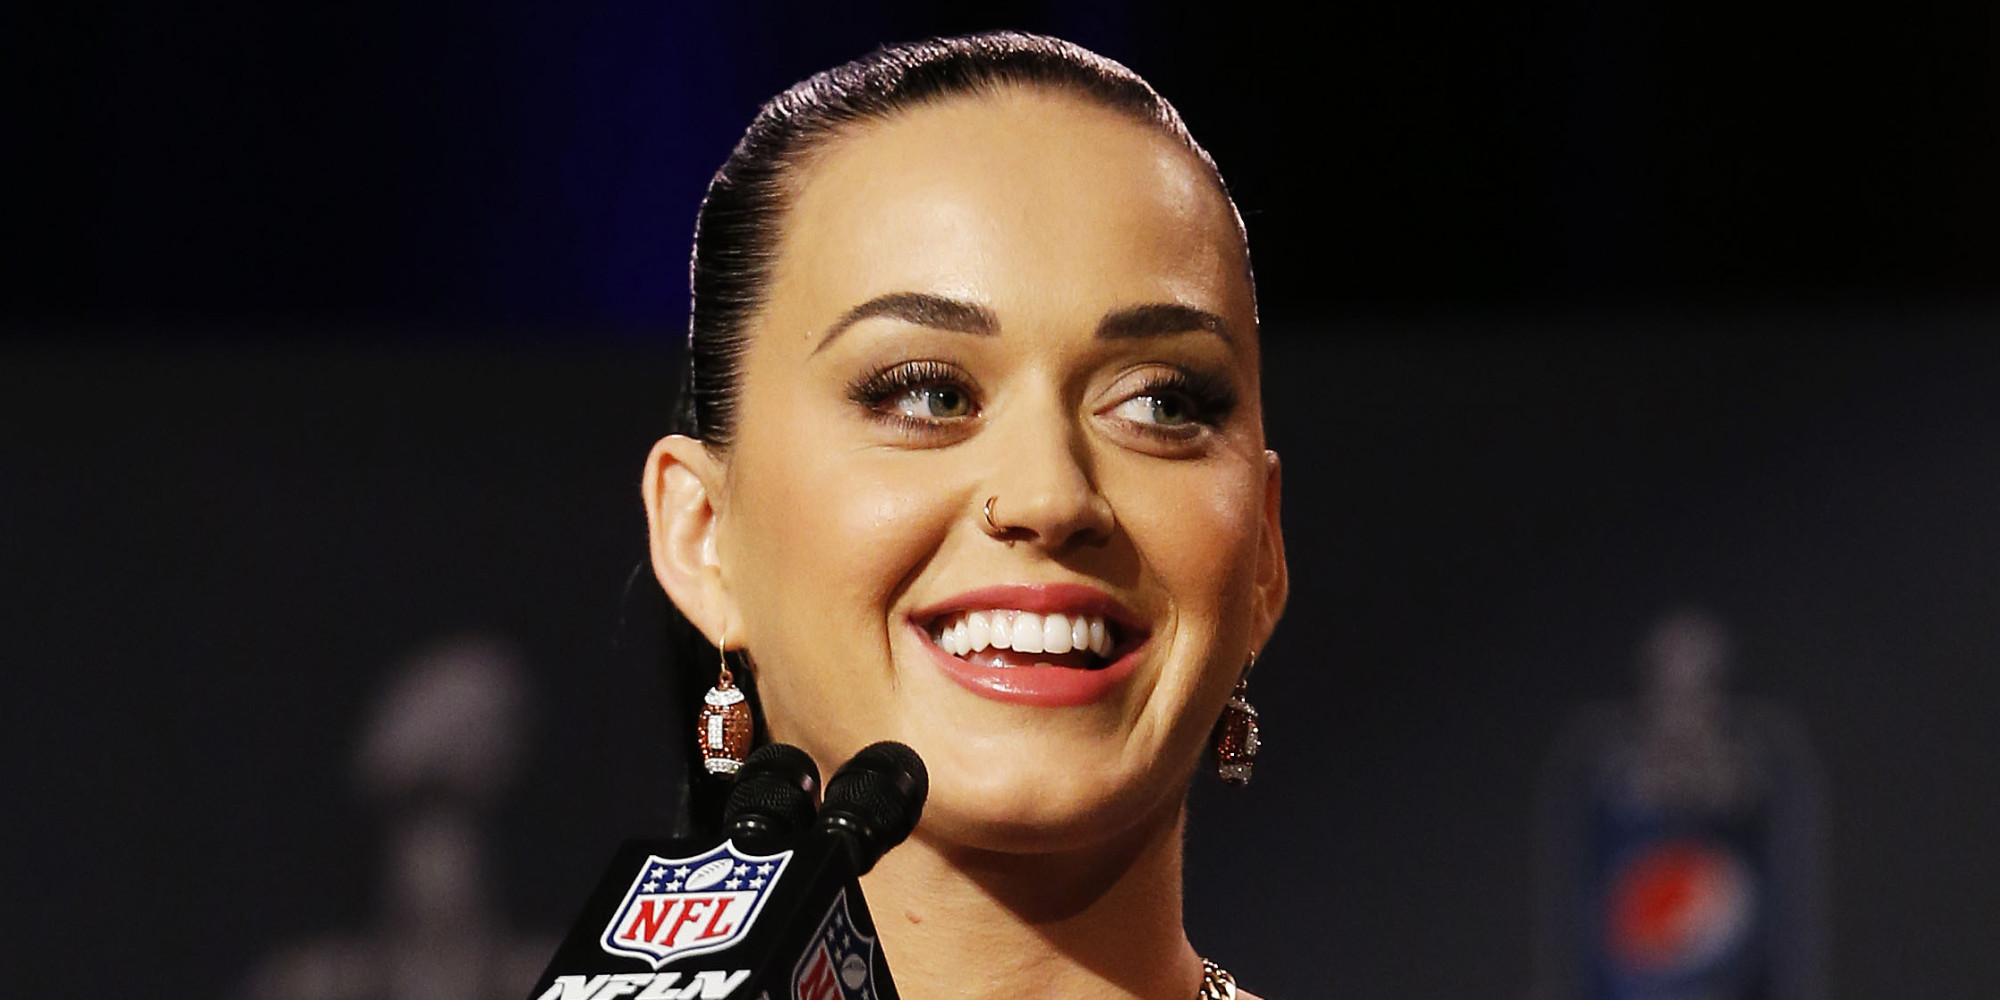 Katy Perry Takes Her Super Bowl Performance Duties Quite Literally ...